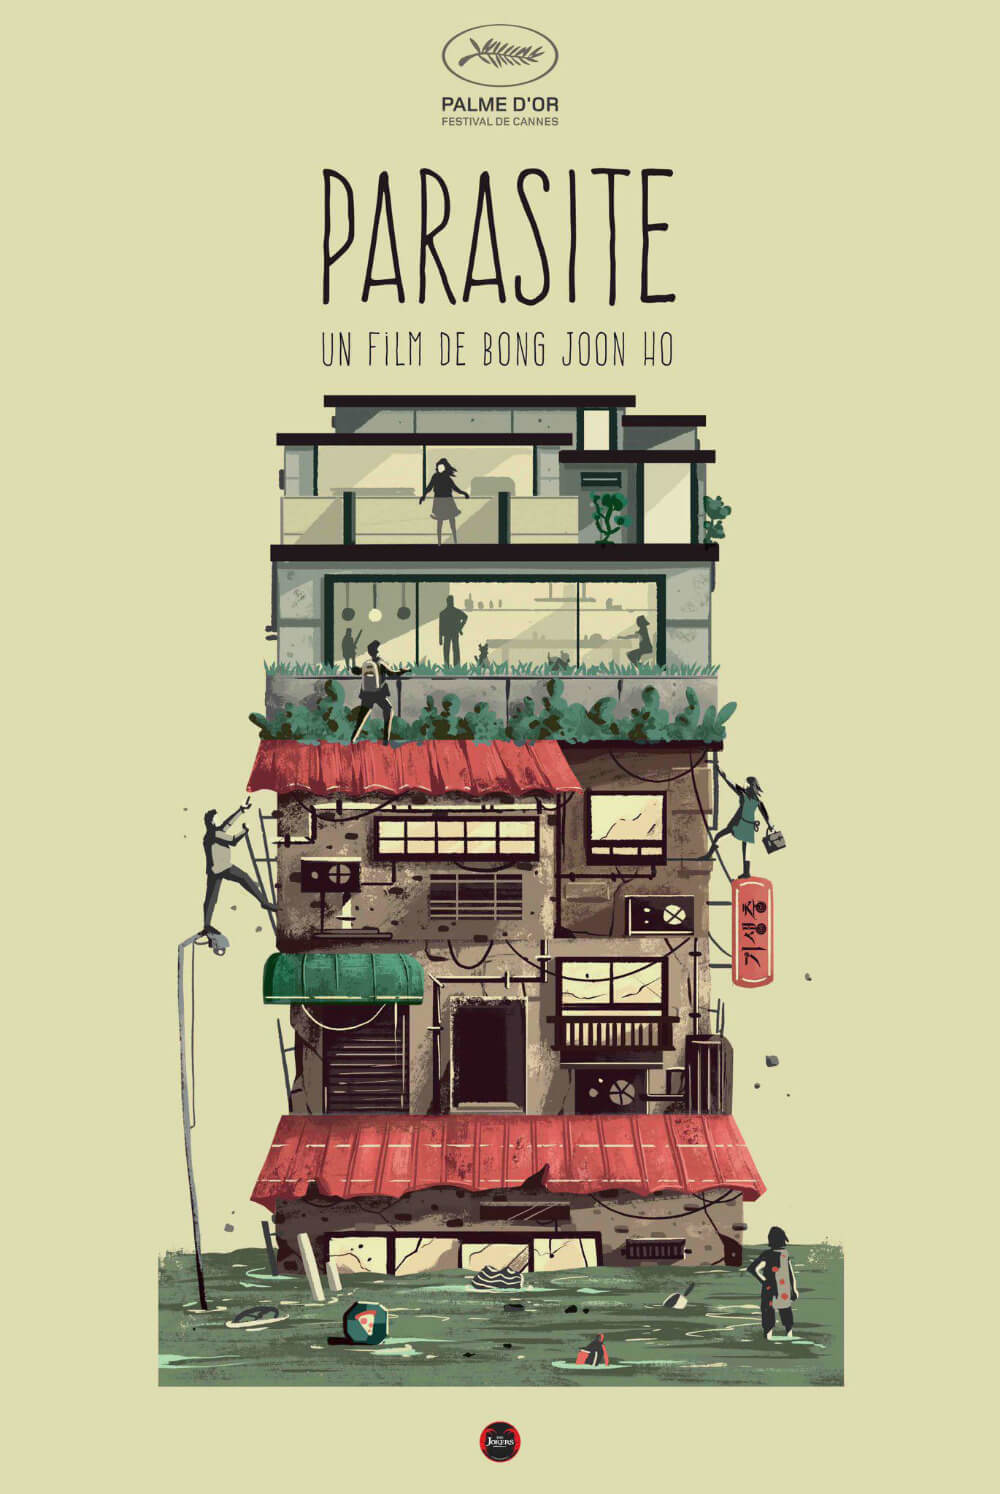 Parasite movie analysis in poster form